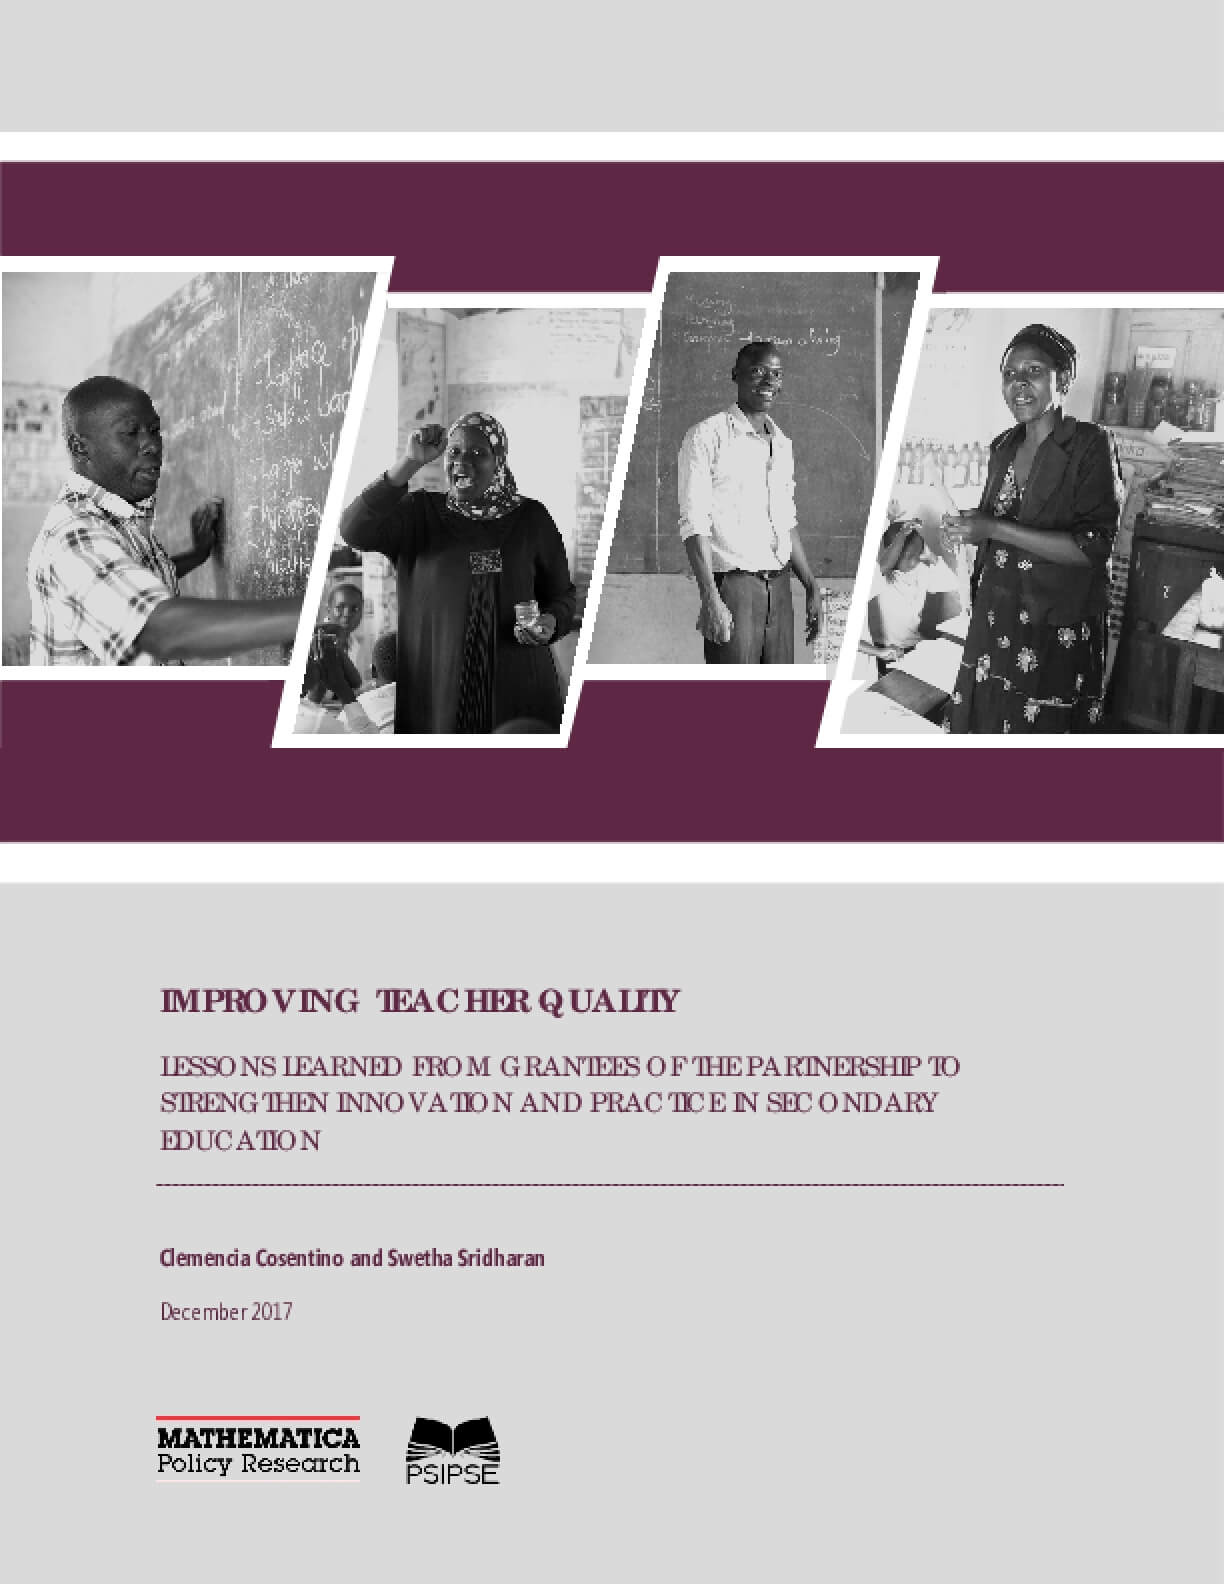 Improving Teacher Quality: Lessons Learned from Grantees of the Partnership to Strengthen Innovation and Practice in Secondary Education